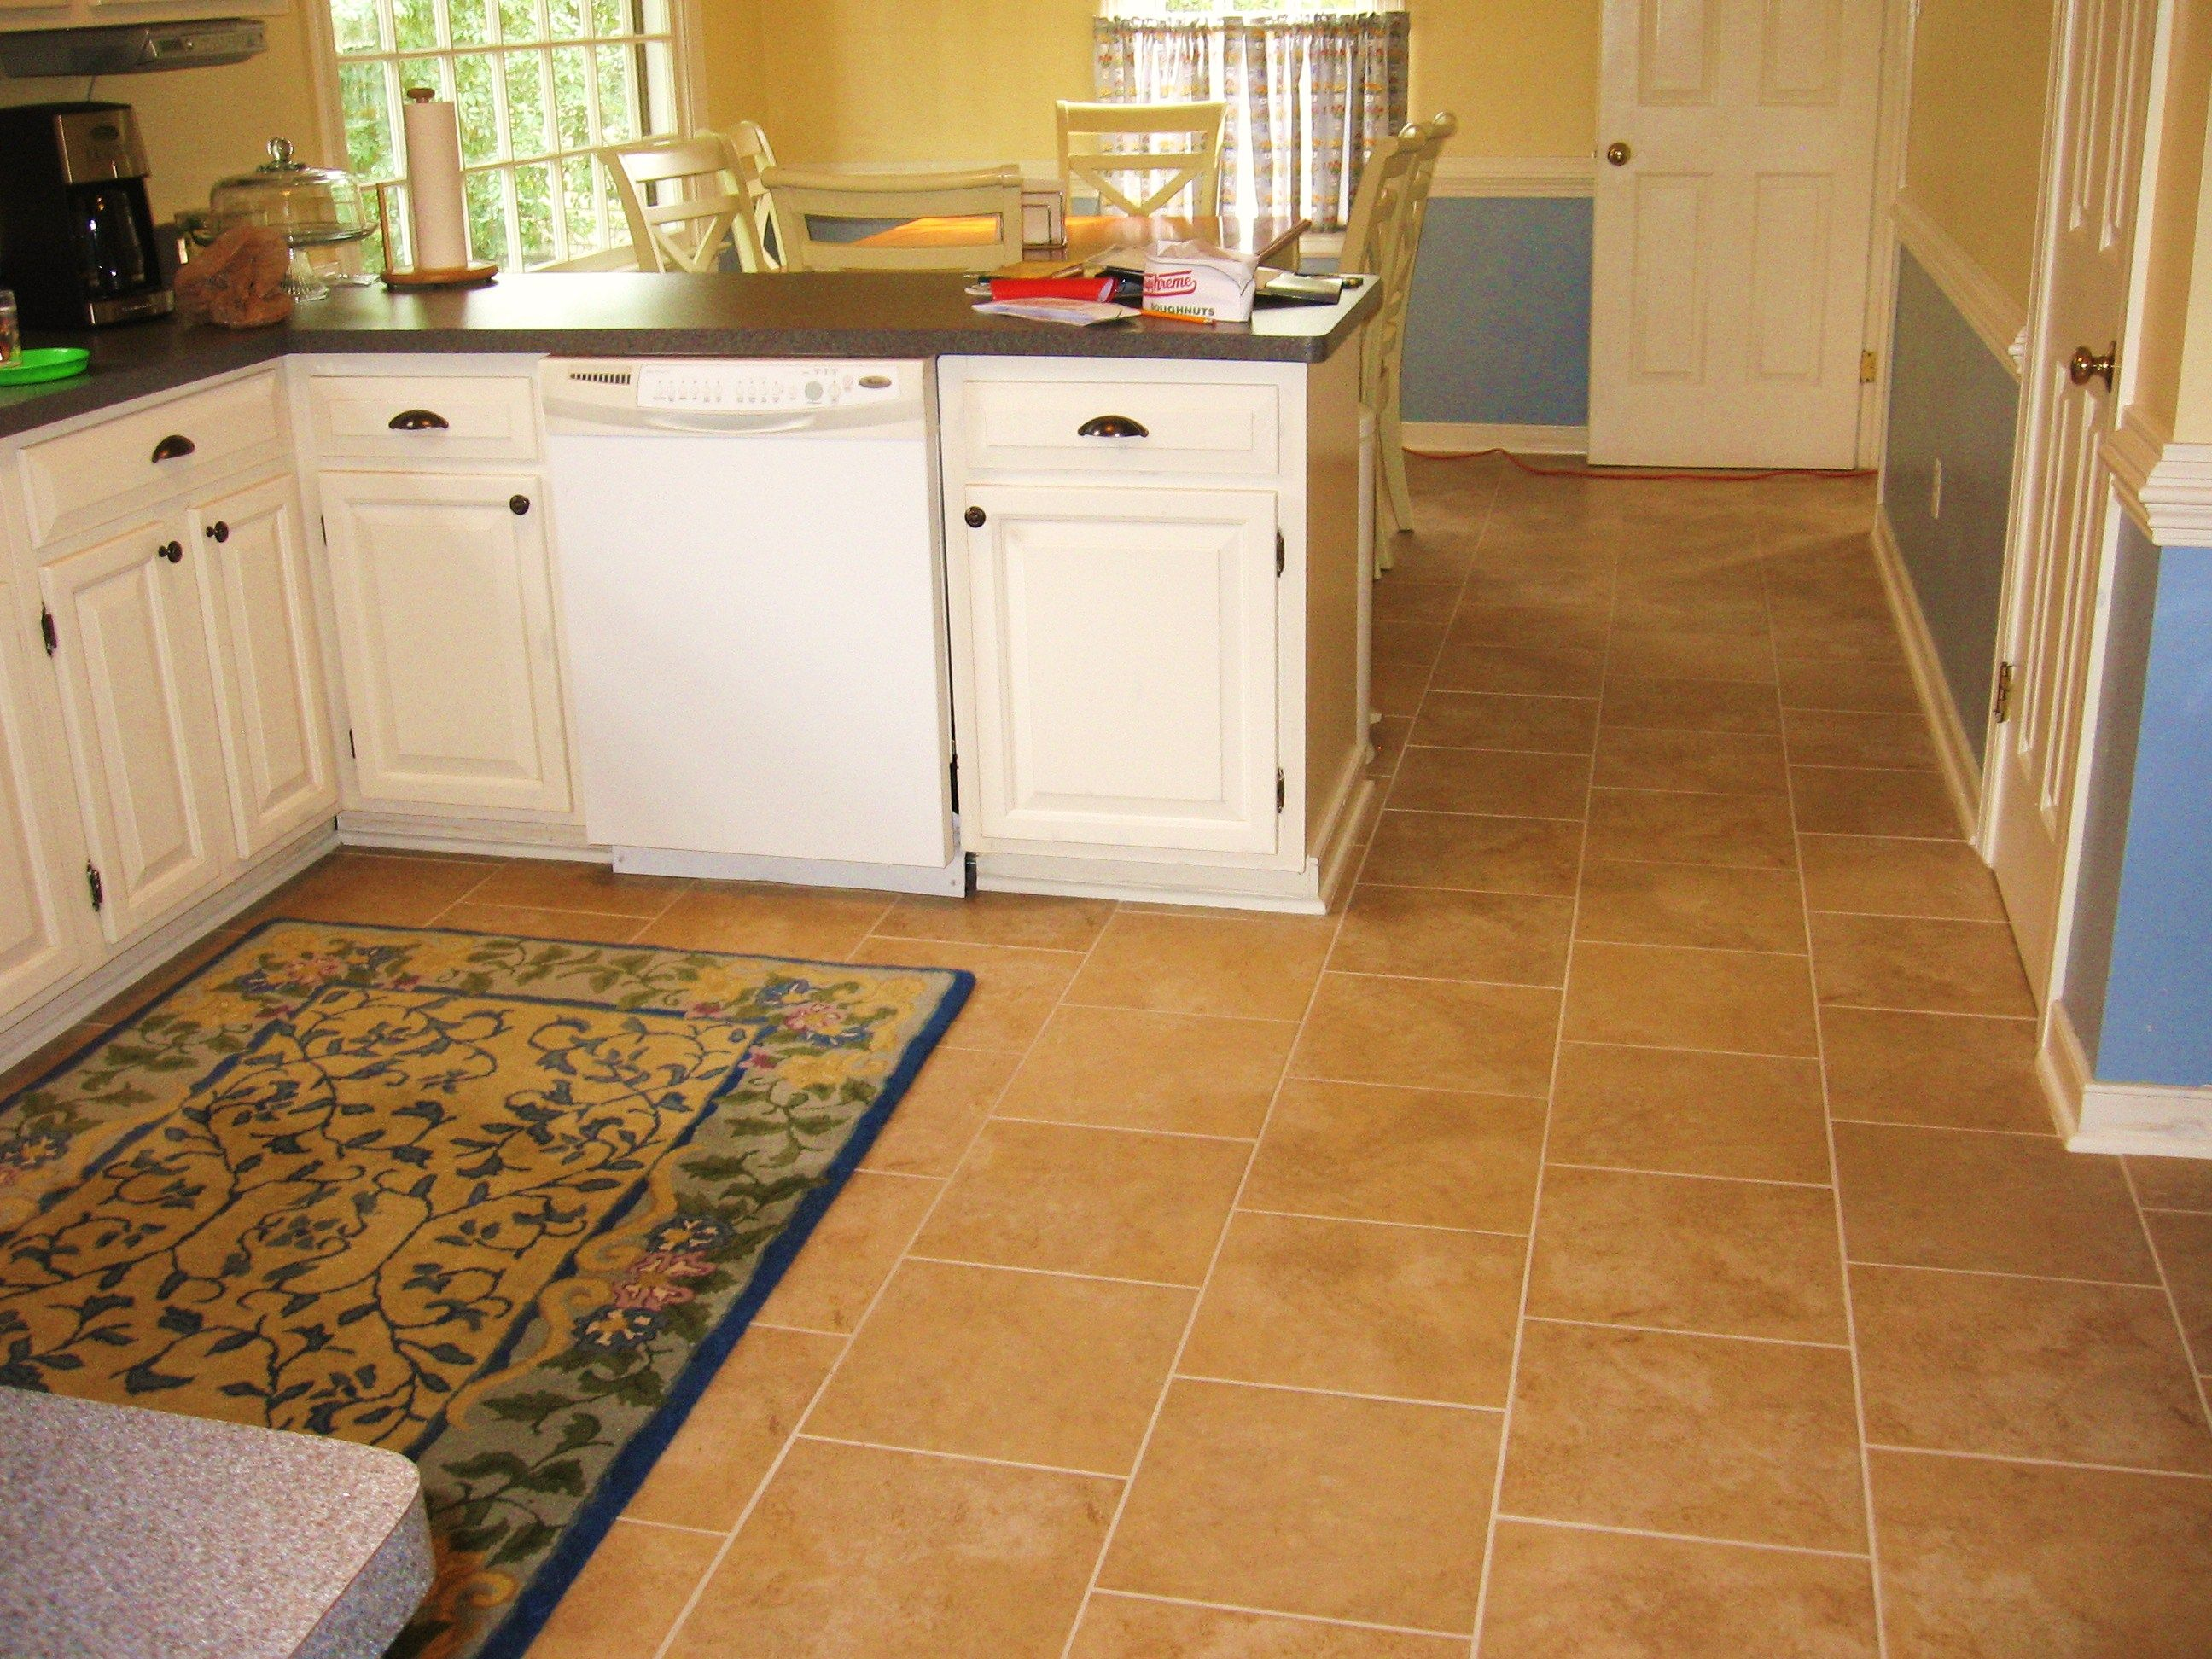 ceramic tile kitchen floor ideas besf ideas kitchen tiles flooring modern home design 23280